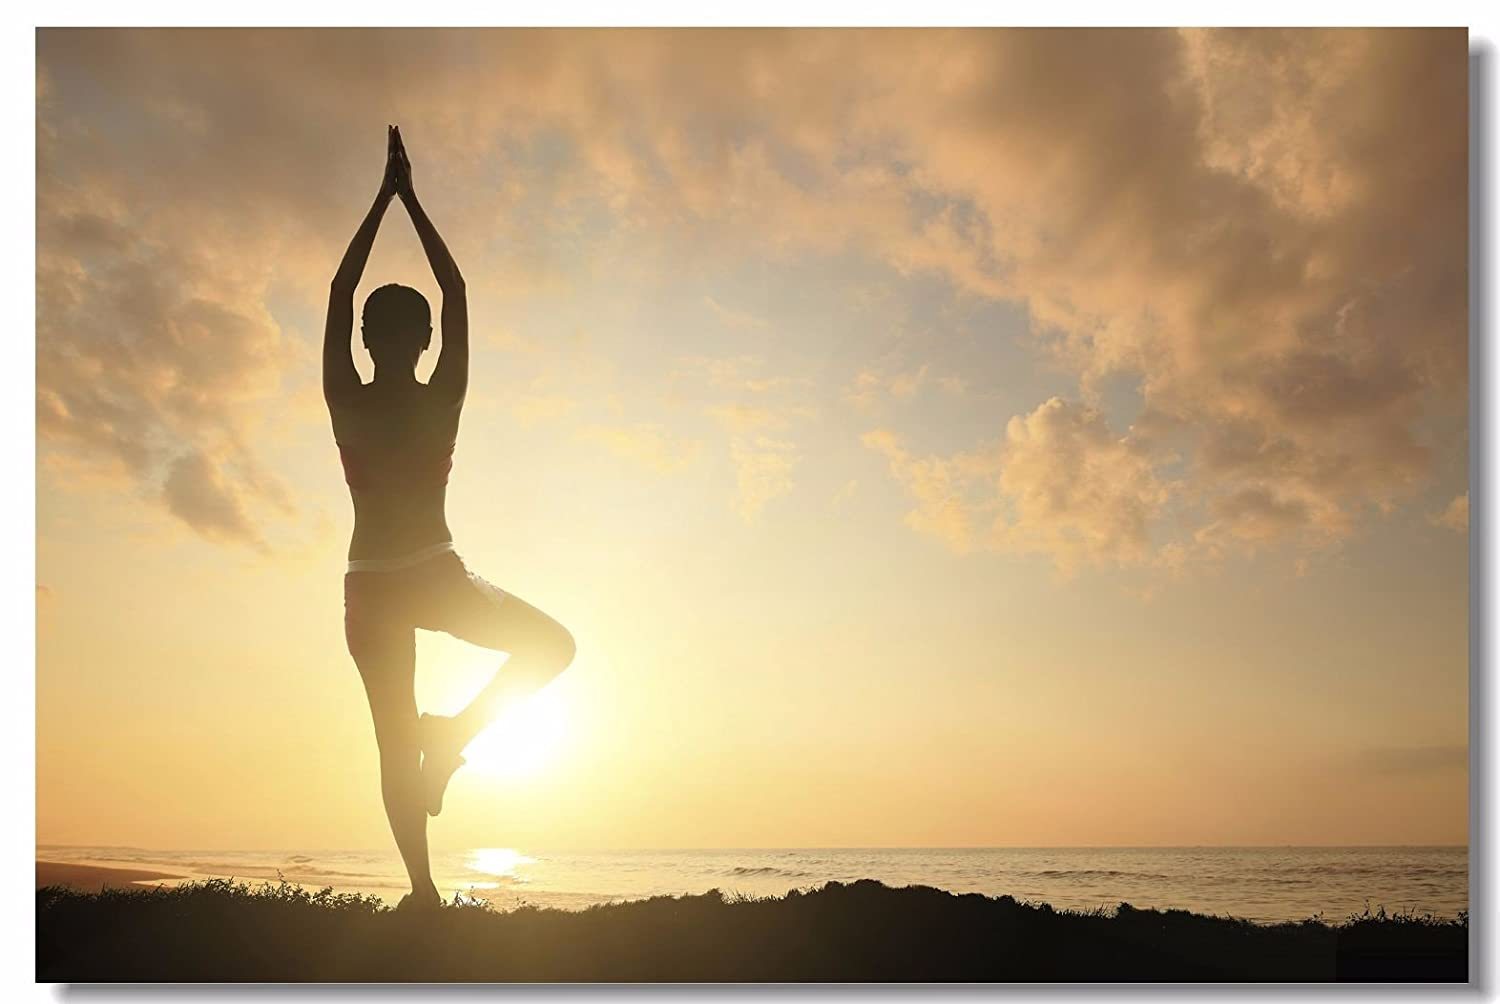 1x Poster Yoga Poses and Spirituality Exercise Meditating Women for SPA Bodybuilding Studio Home Room Hotel Office Wall Deco Prints 35.5x23.5 ...